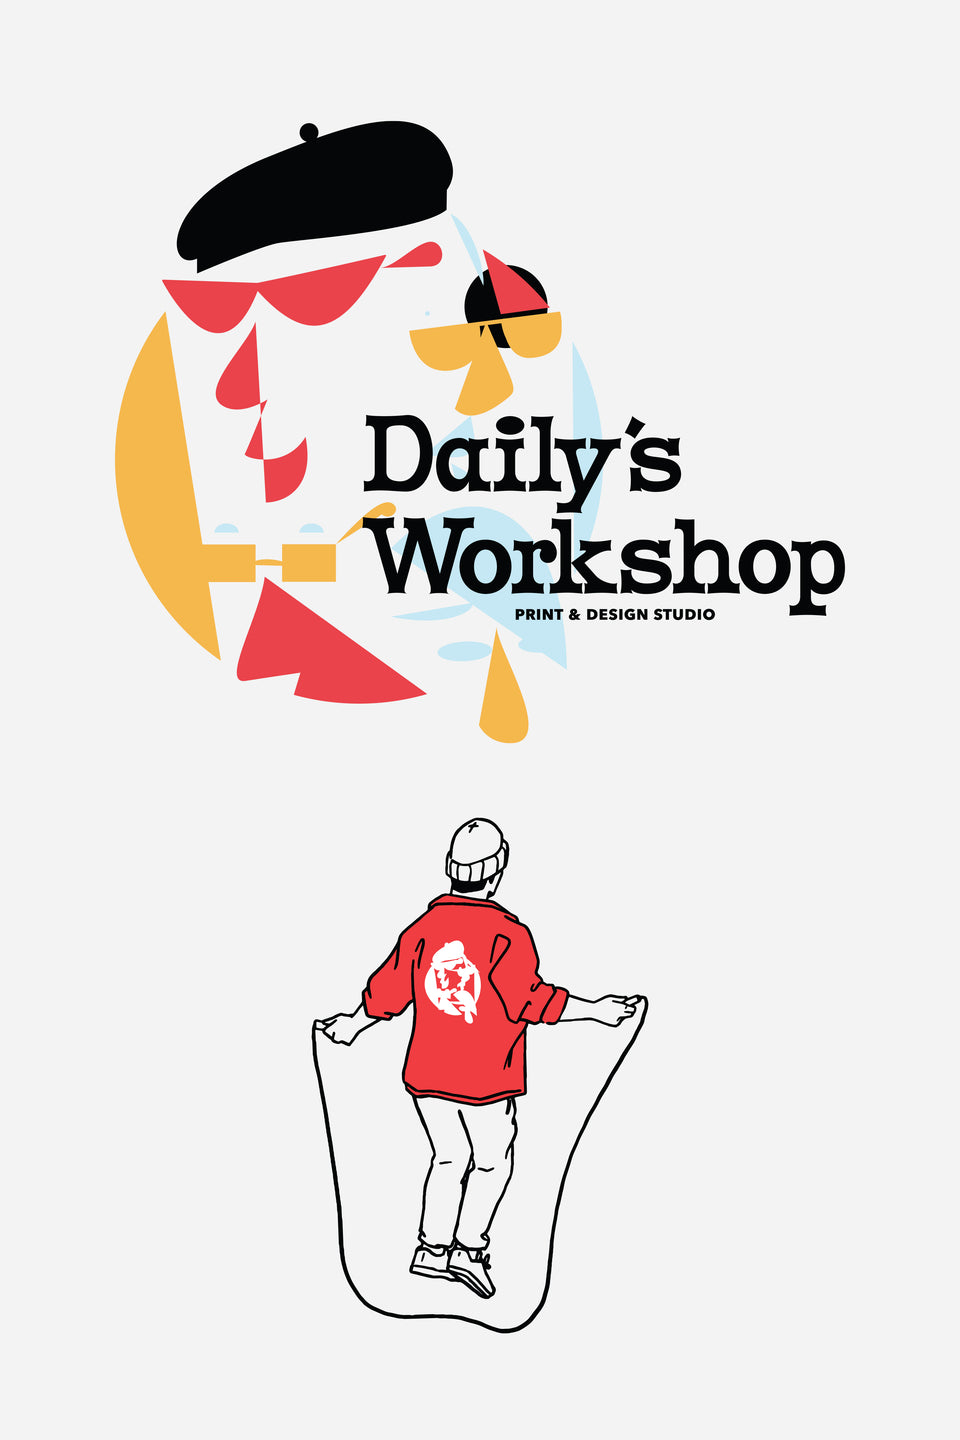 Daily's Workshop